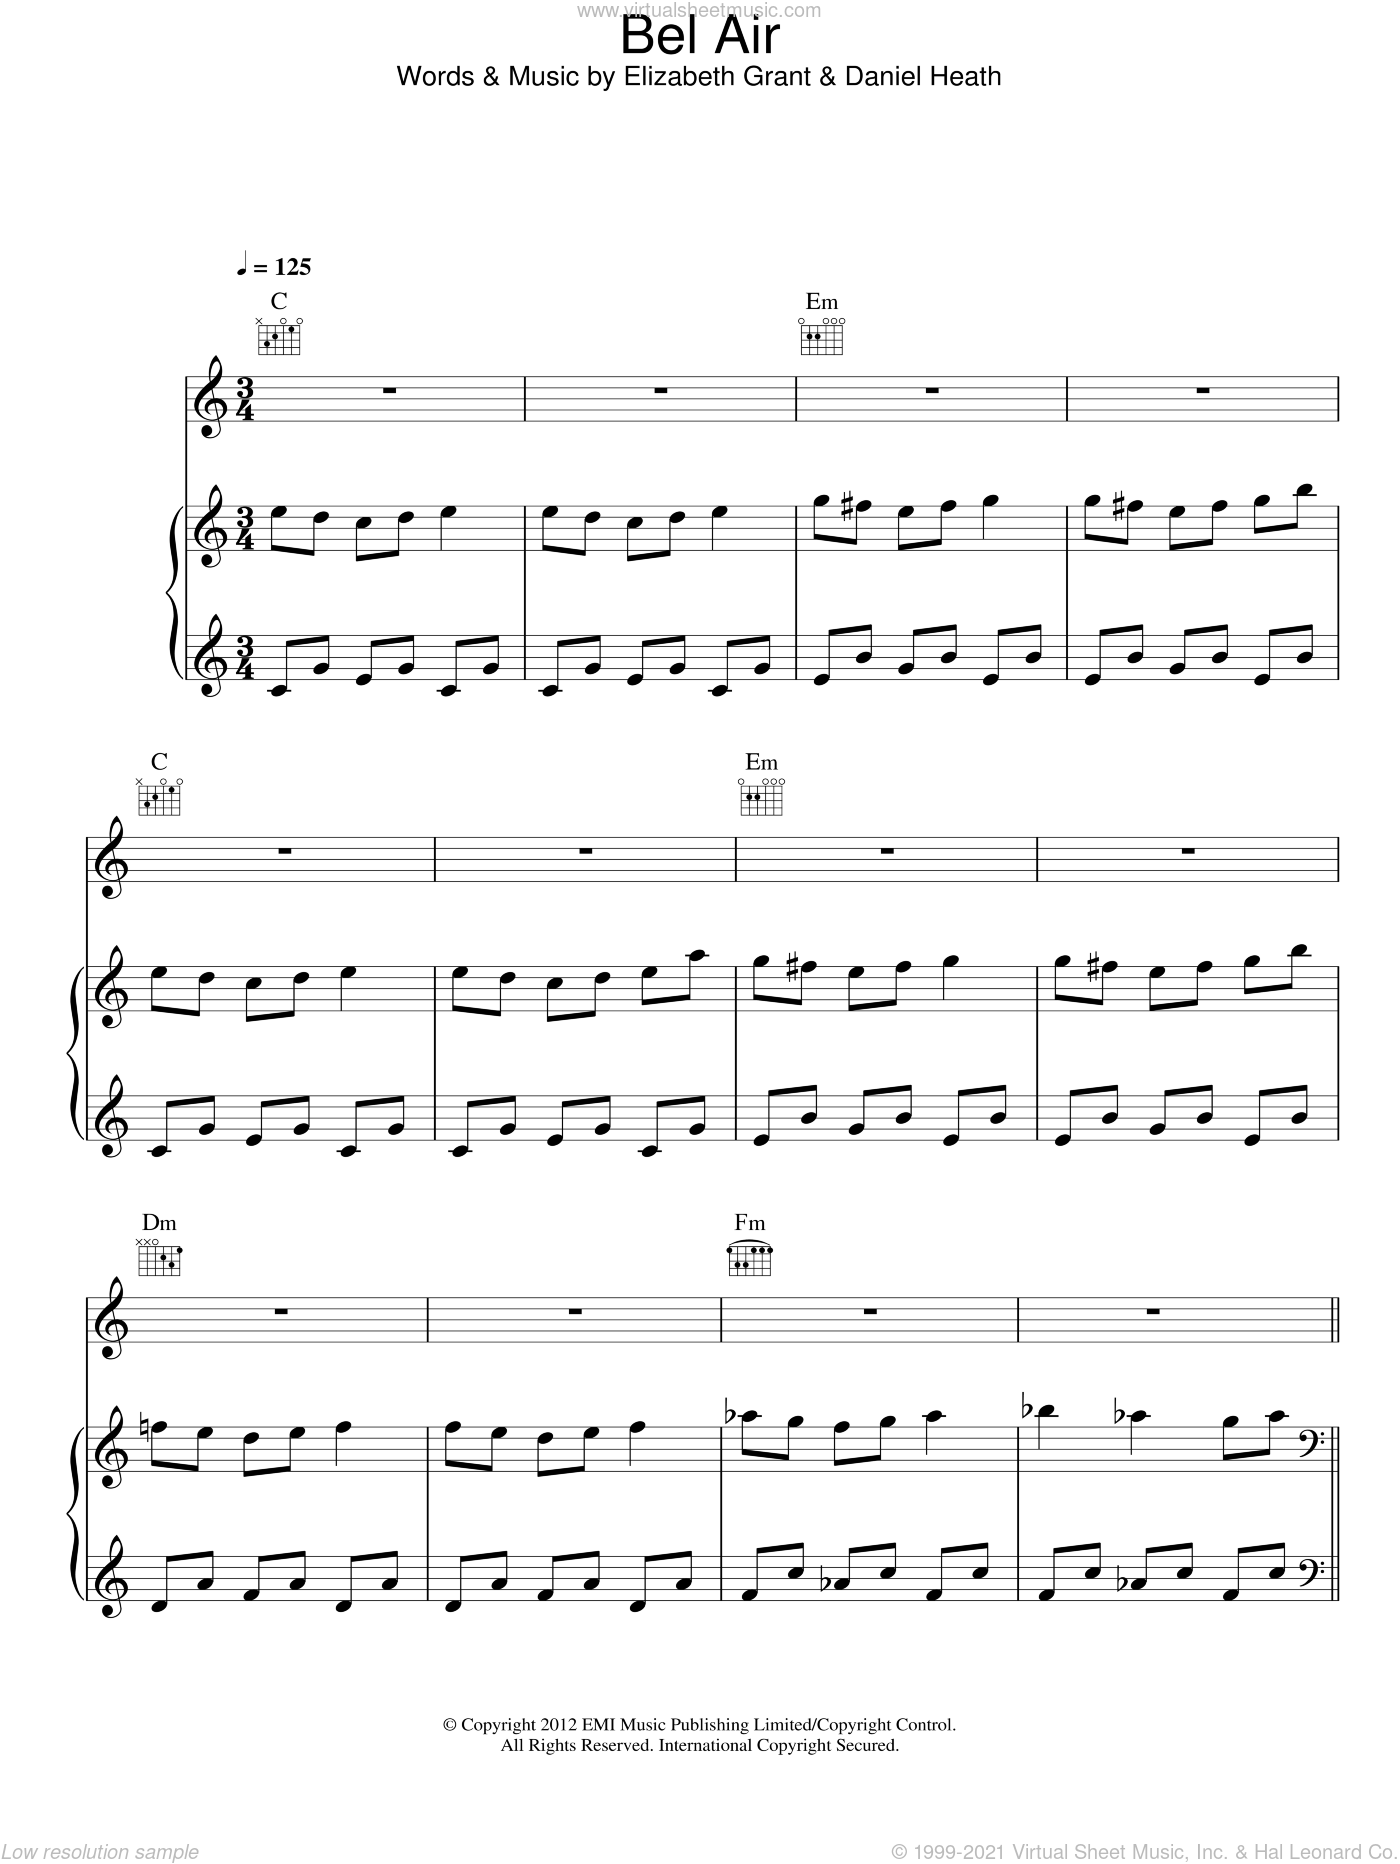 Bel Air sheet music for voice, piano or guitar by Lana Del Rey. Score Image Preview.